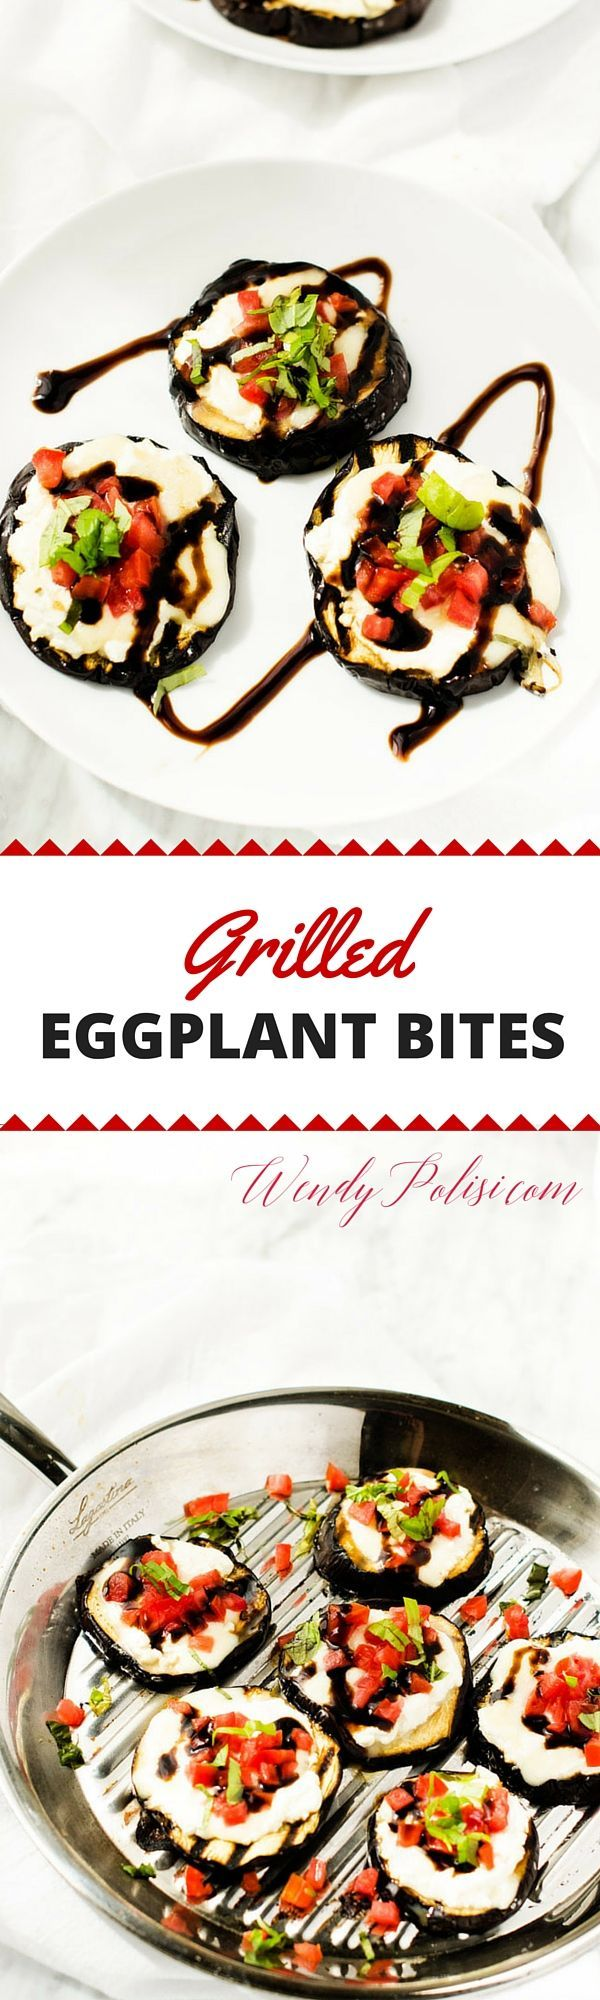 Grilled Eggplant Bites - These Grilled Eggplant Bites are simple to make and perfect for easy, elegant entertaining.  With eggplant, fresh mozzarella, ricotta, balsamic reduction and basil, this simple dish is packed with flavor.